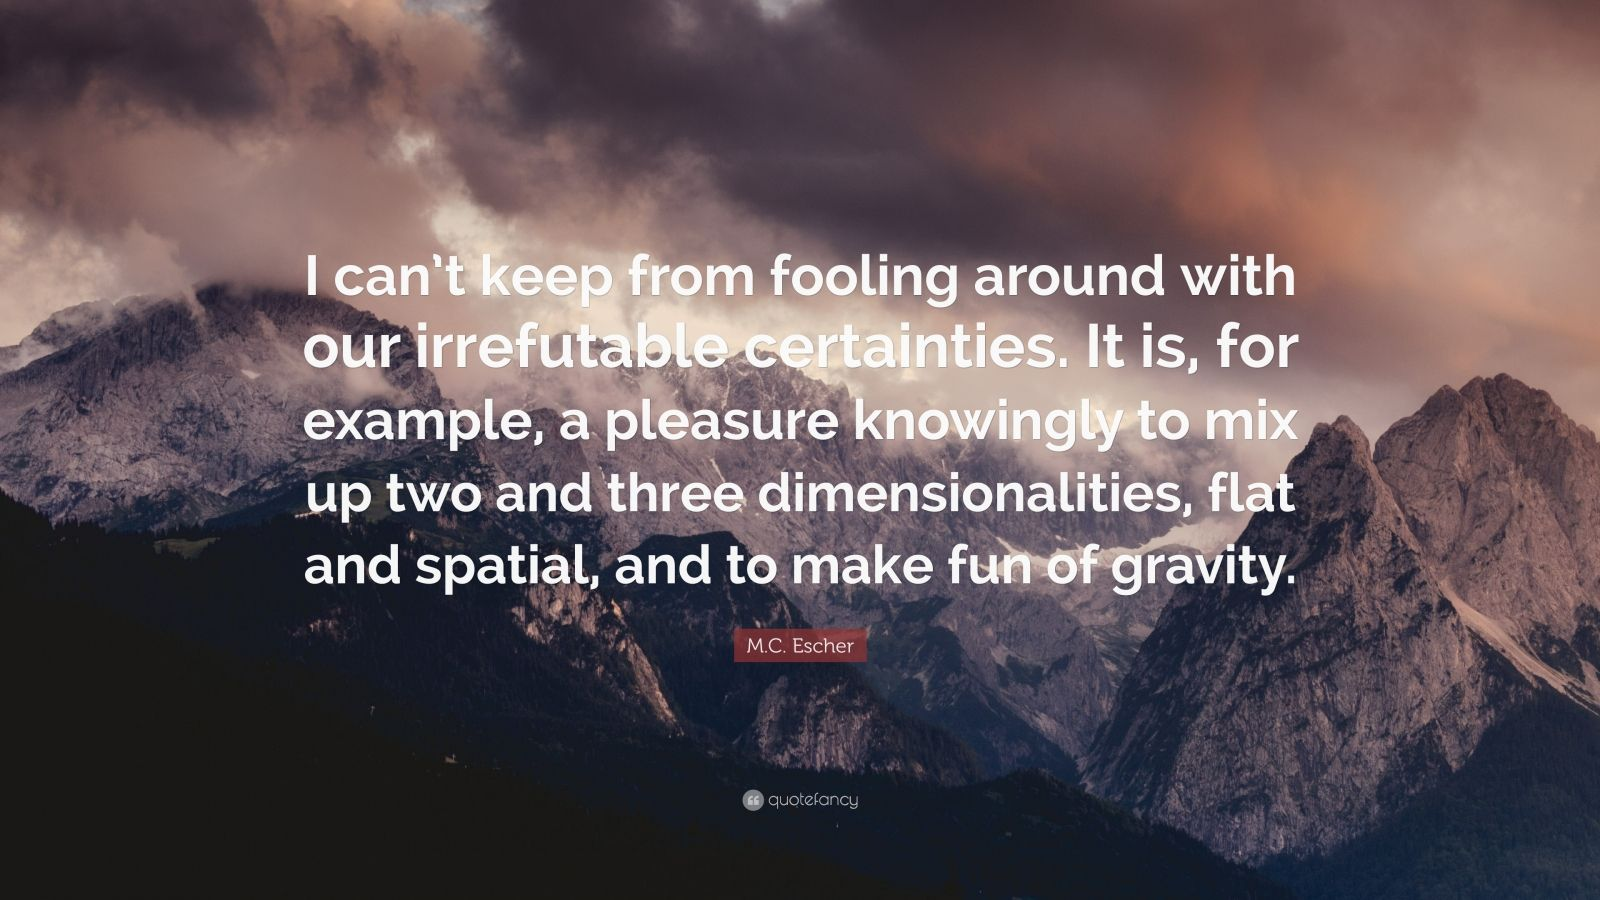 """M.C. Escher Quote: """"I can't keep from fooling around with our irrefutable certainties. It is, for example, a pleasure knowingly to mix up two and three dimensionalities, flat and spatial, and to make fun of gravity."""""""